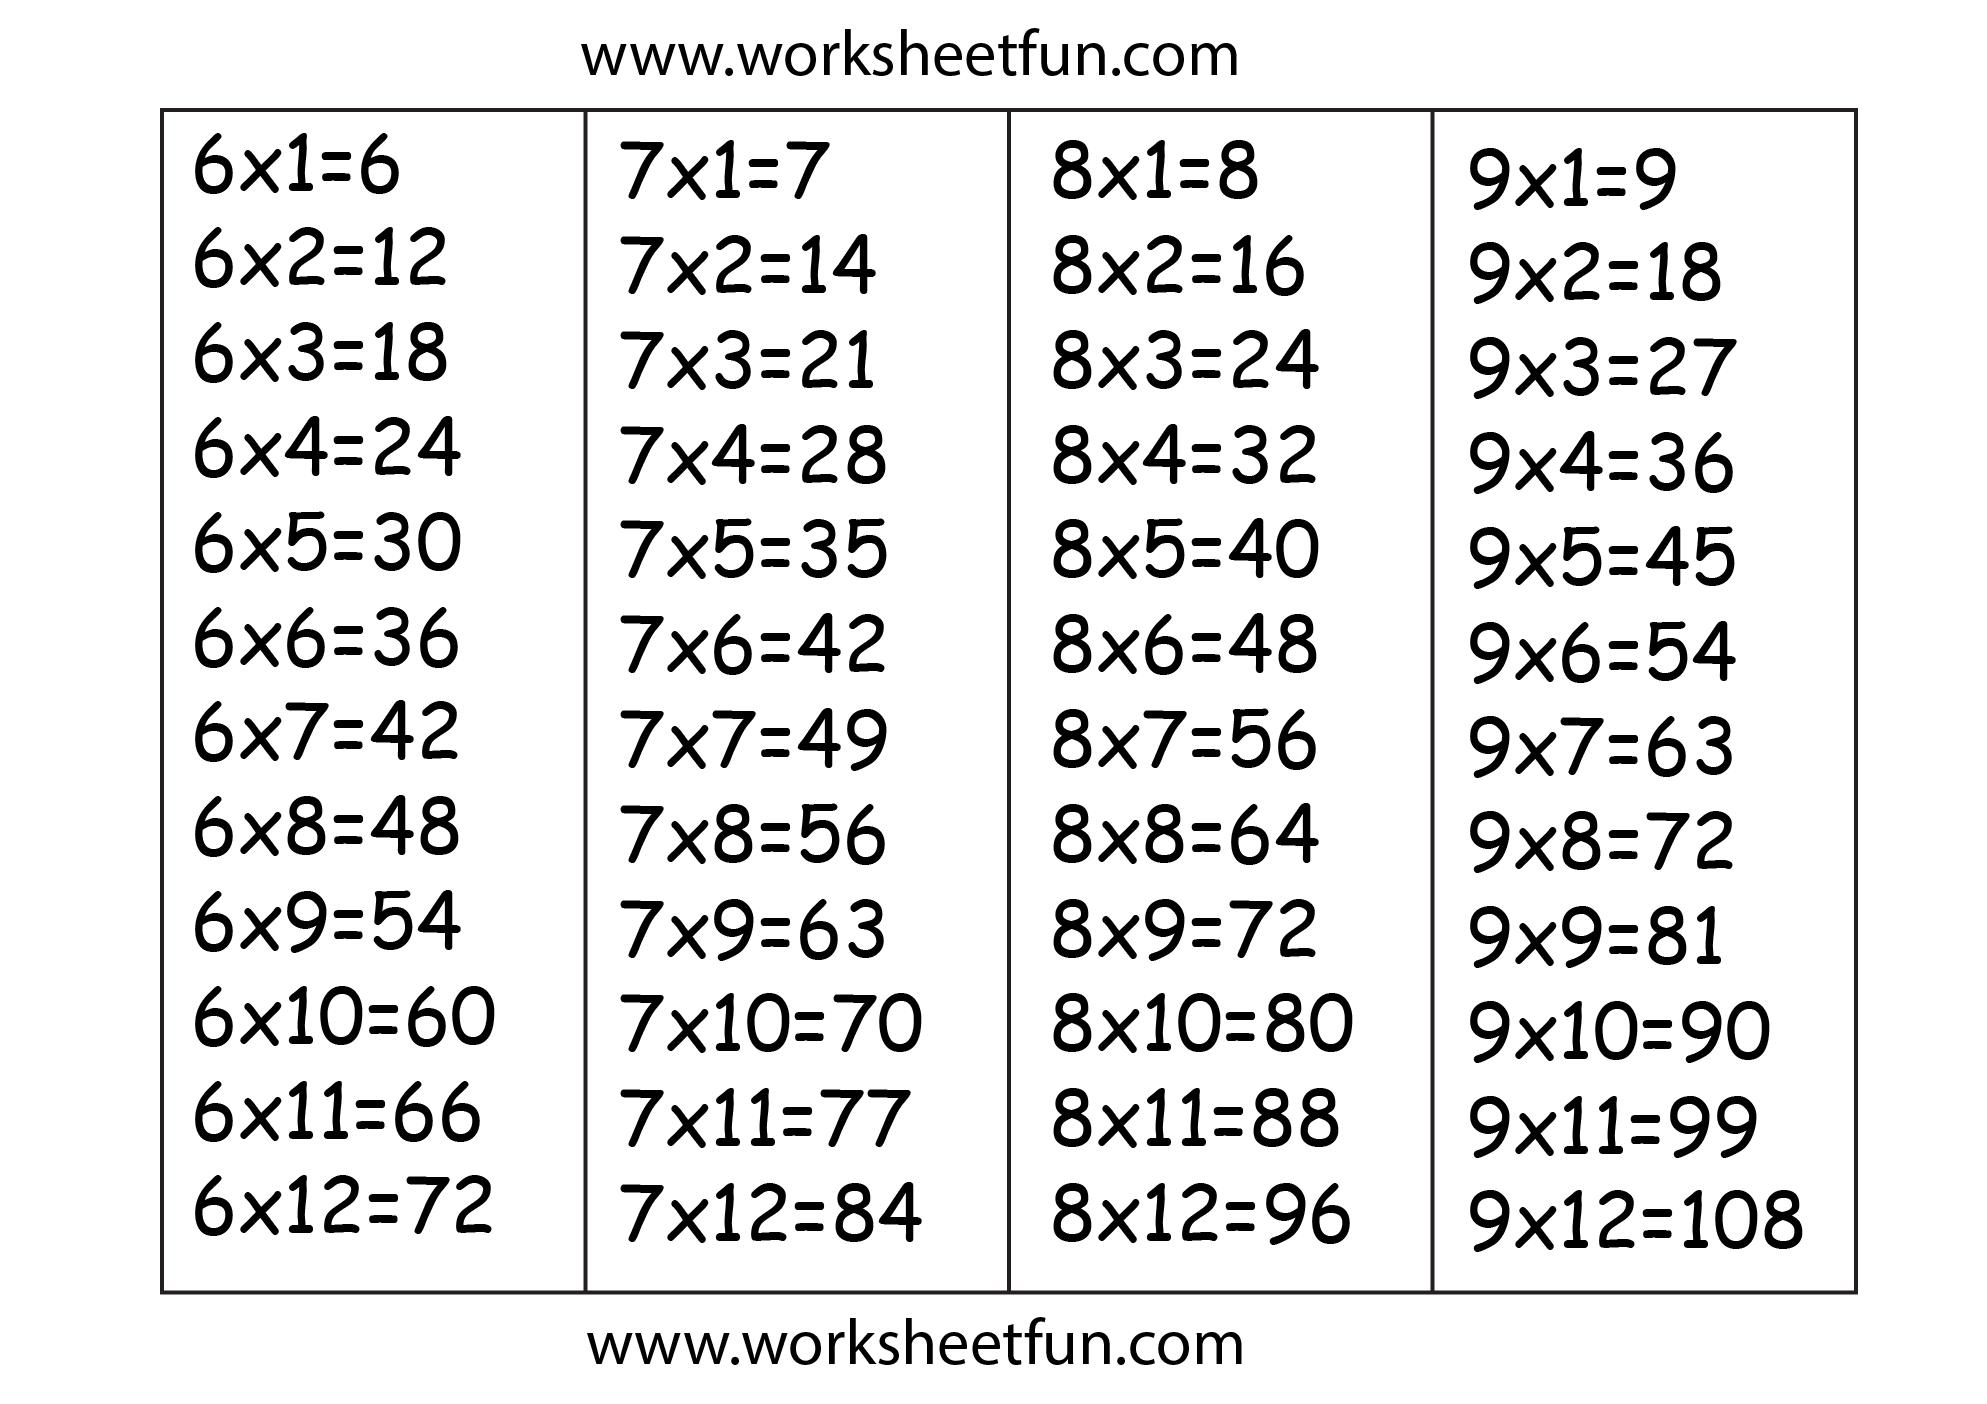 Multiplication Worksheets 6 Facts